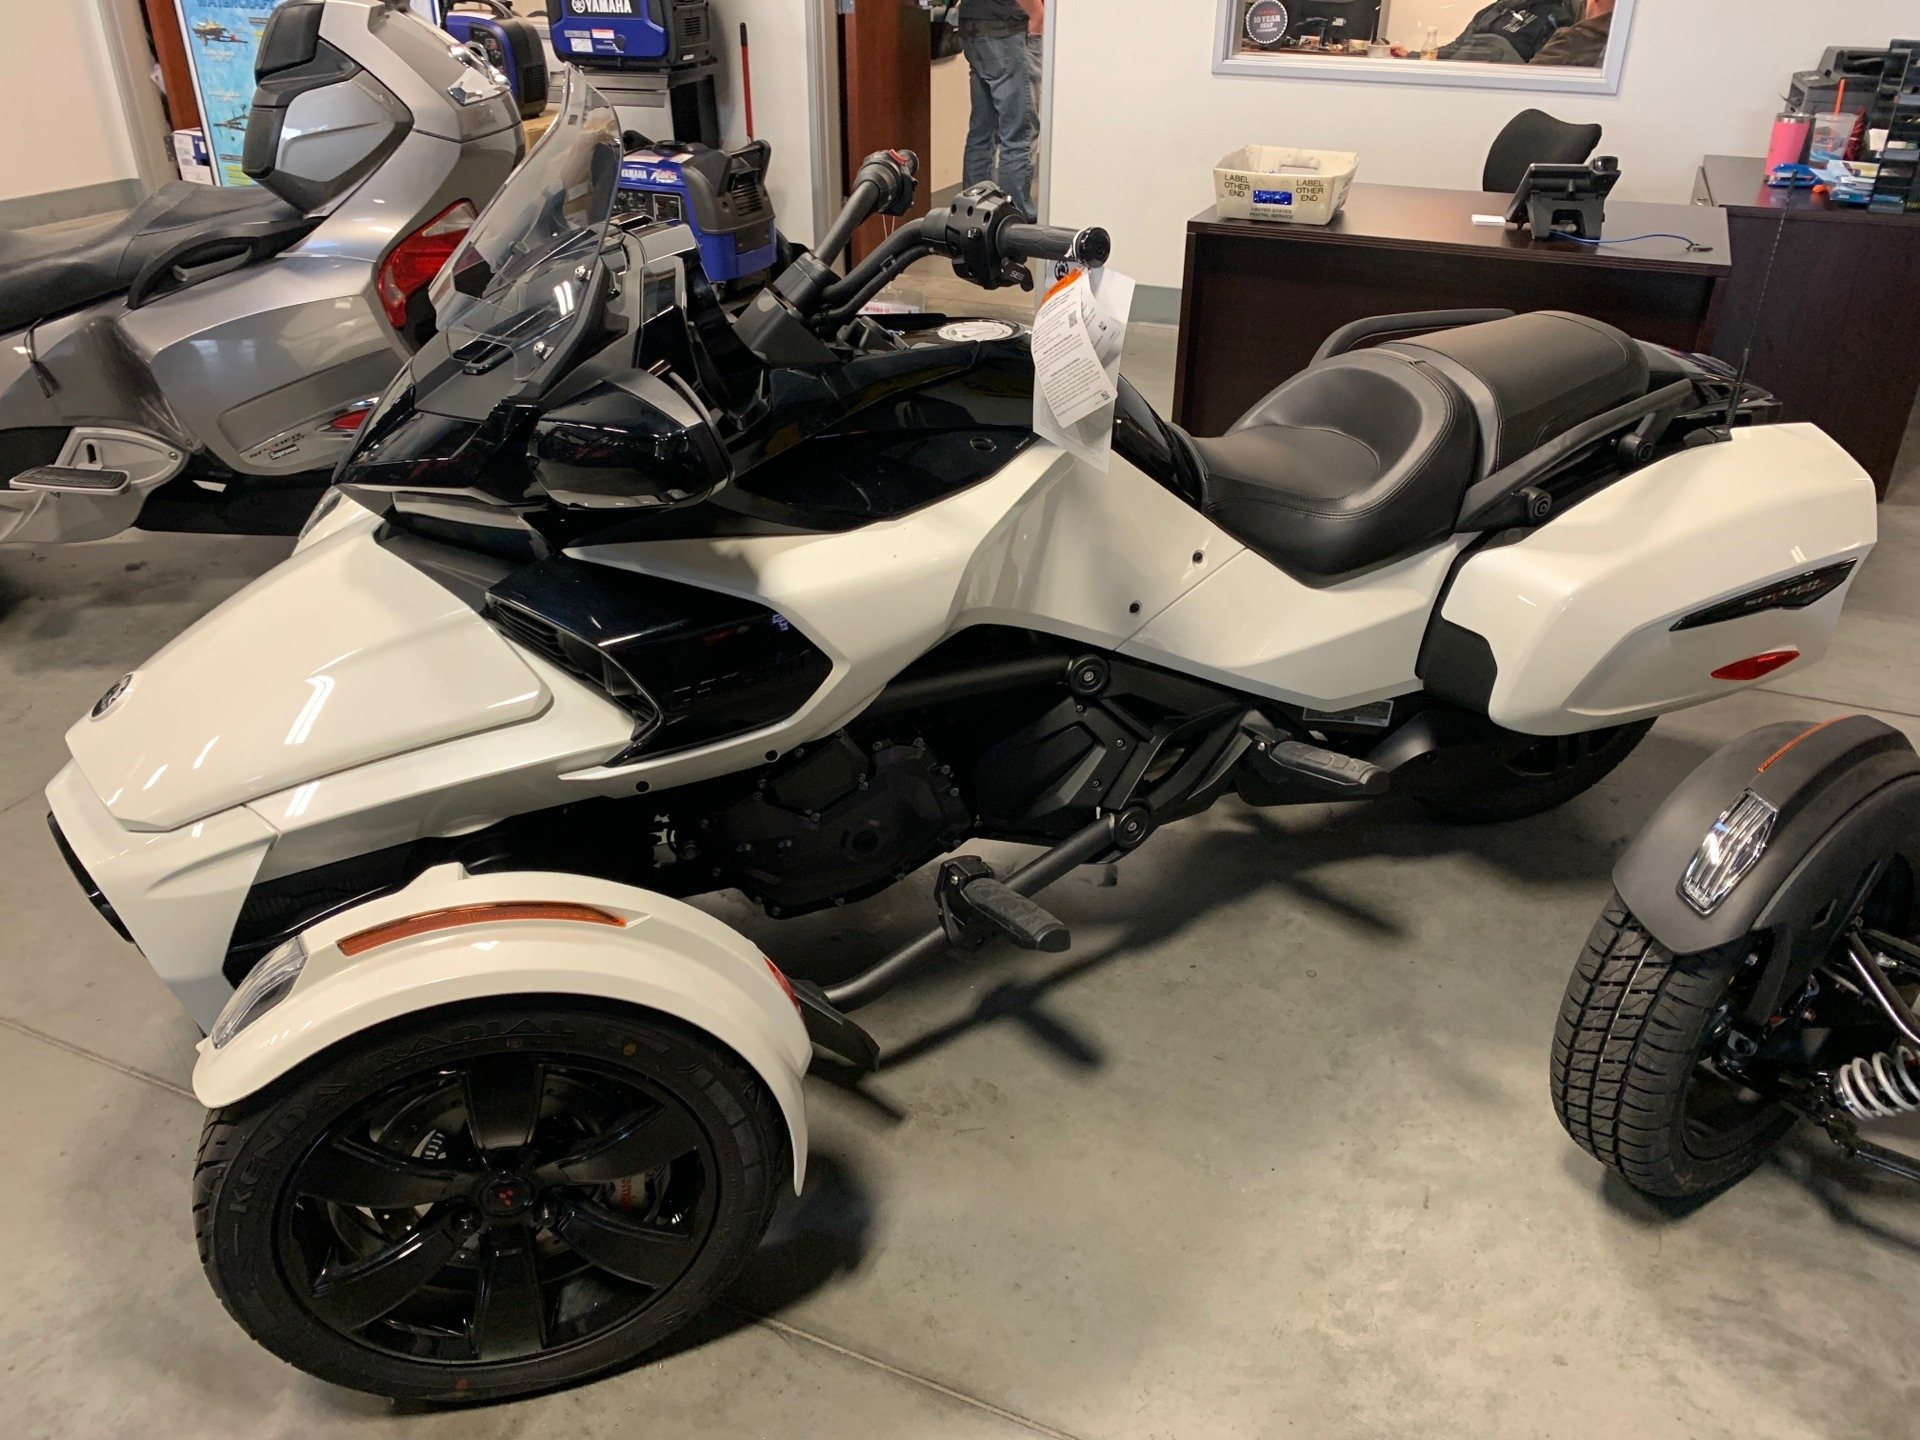 2019 Can-Am Spyder F3-T in Las Vegas, Nevada - Photo 1